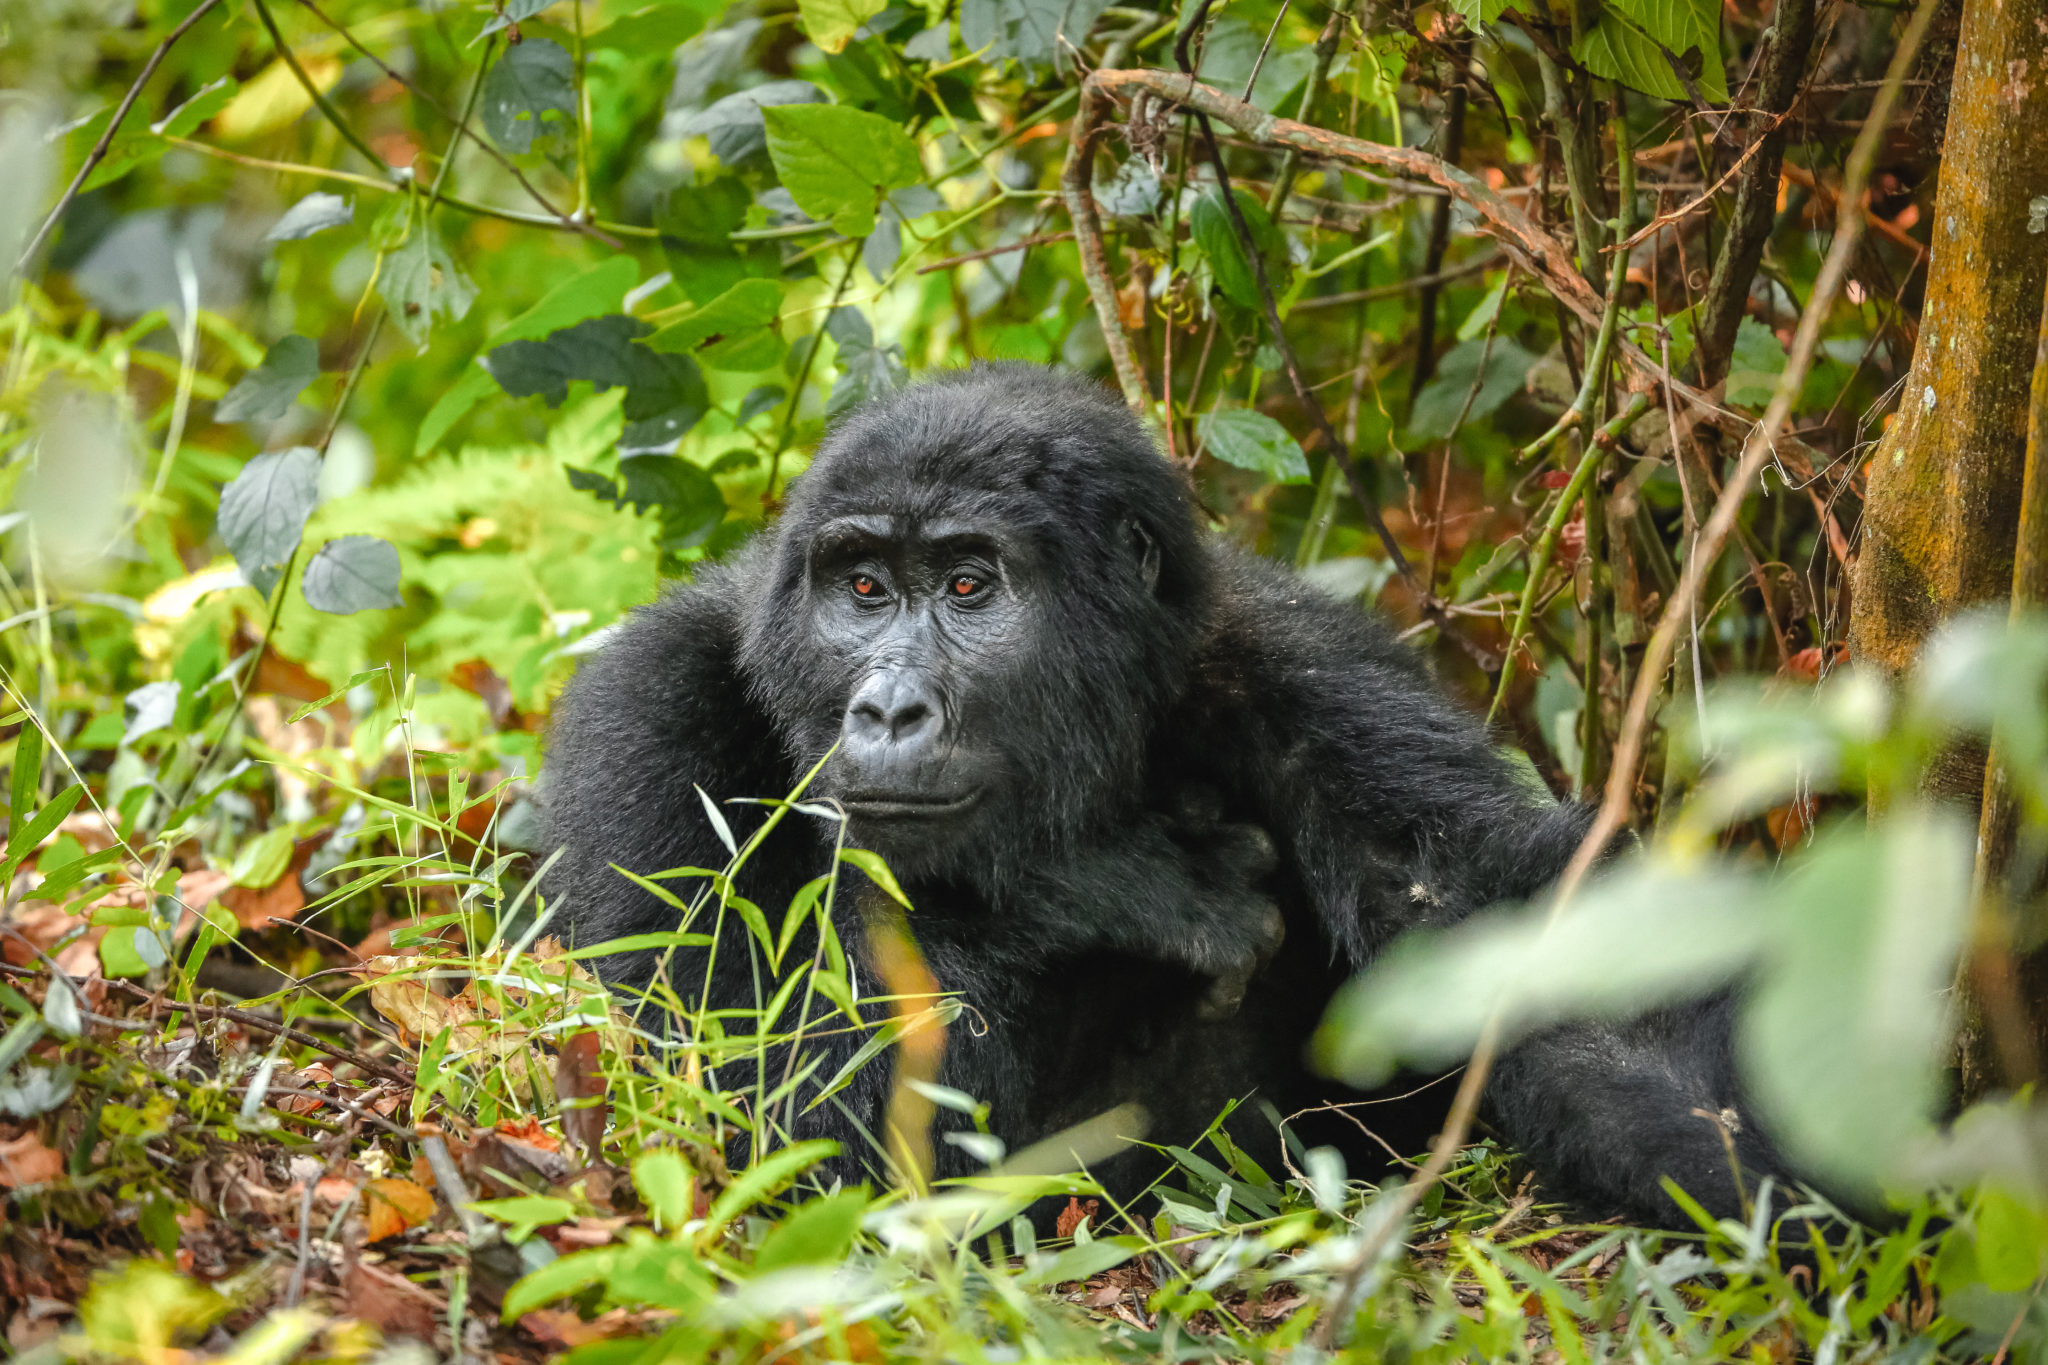 Adult mountain gorilla relaxing in Bwindi Impenetrable Forest